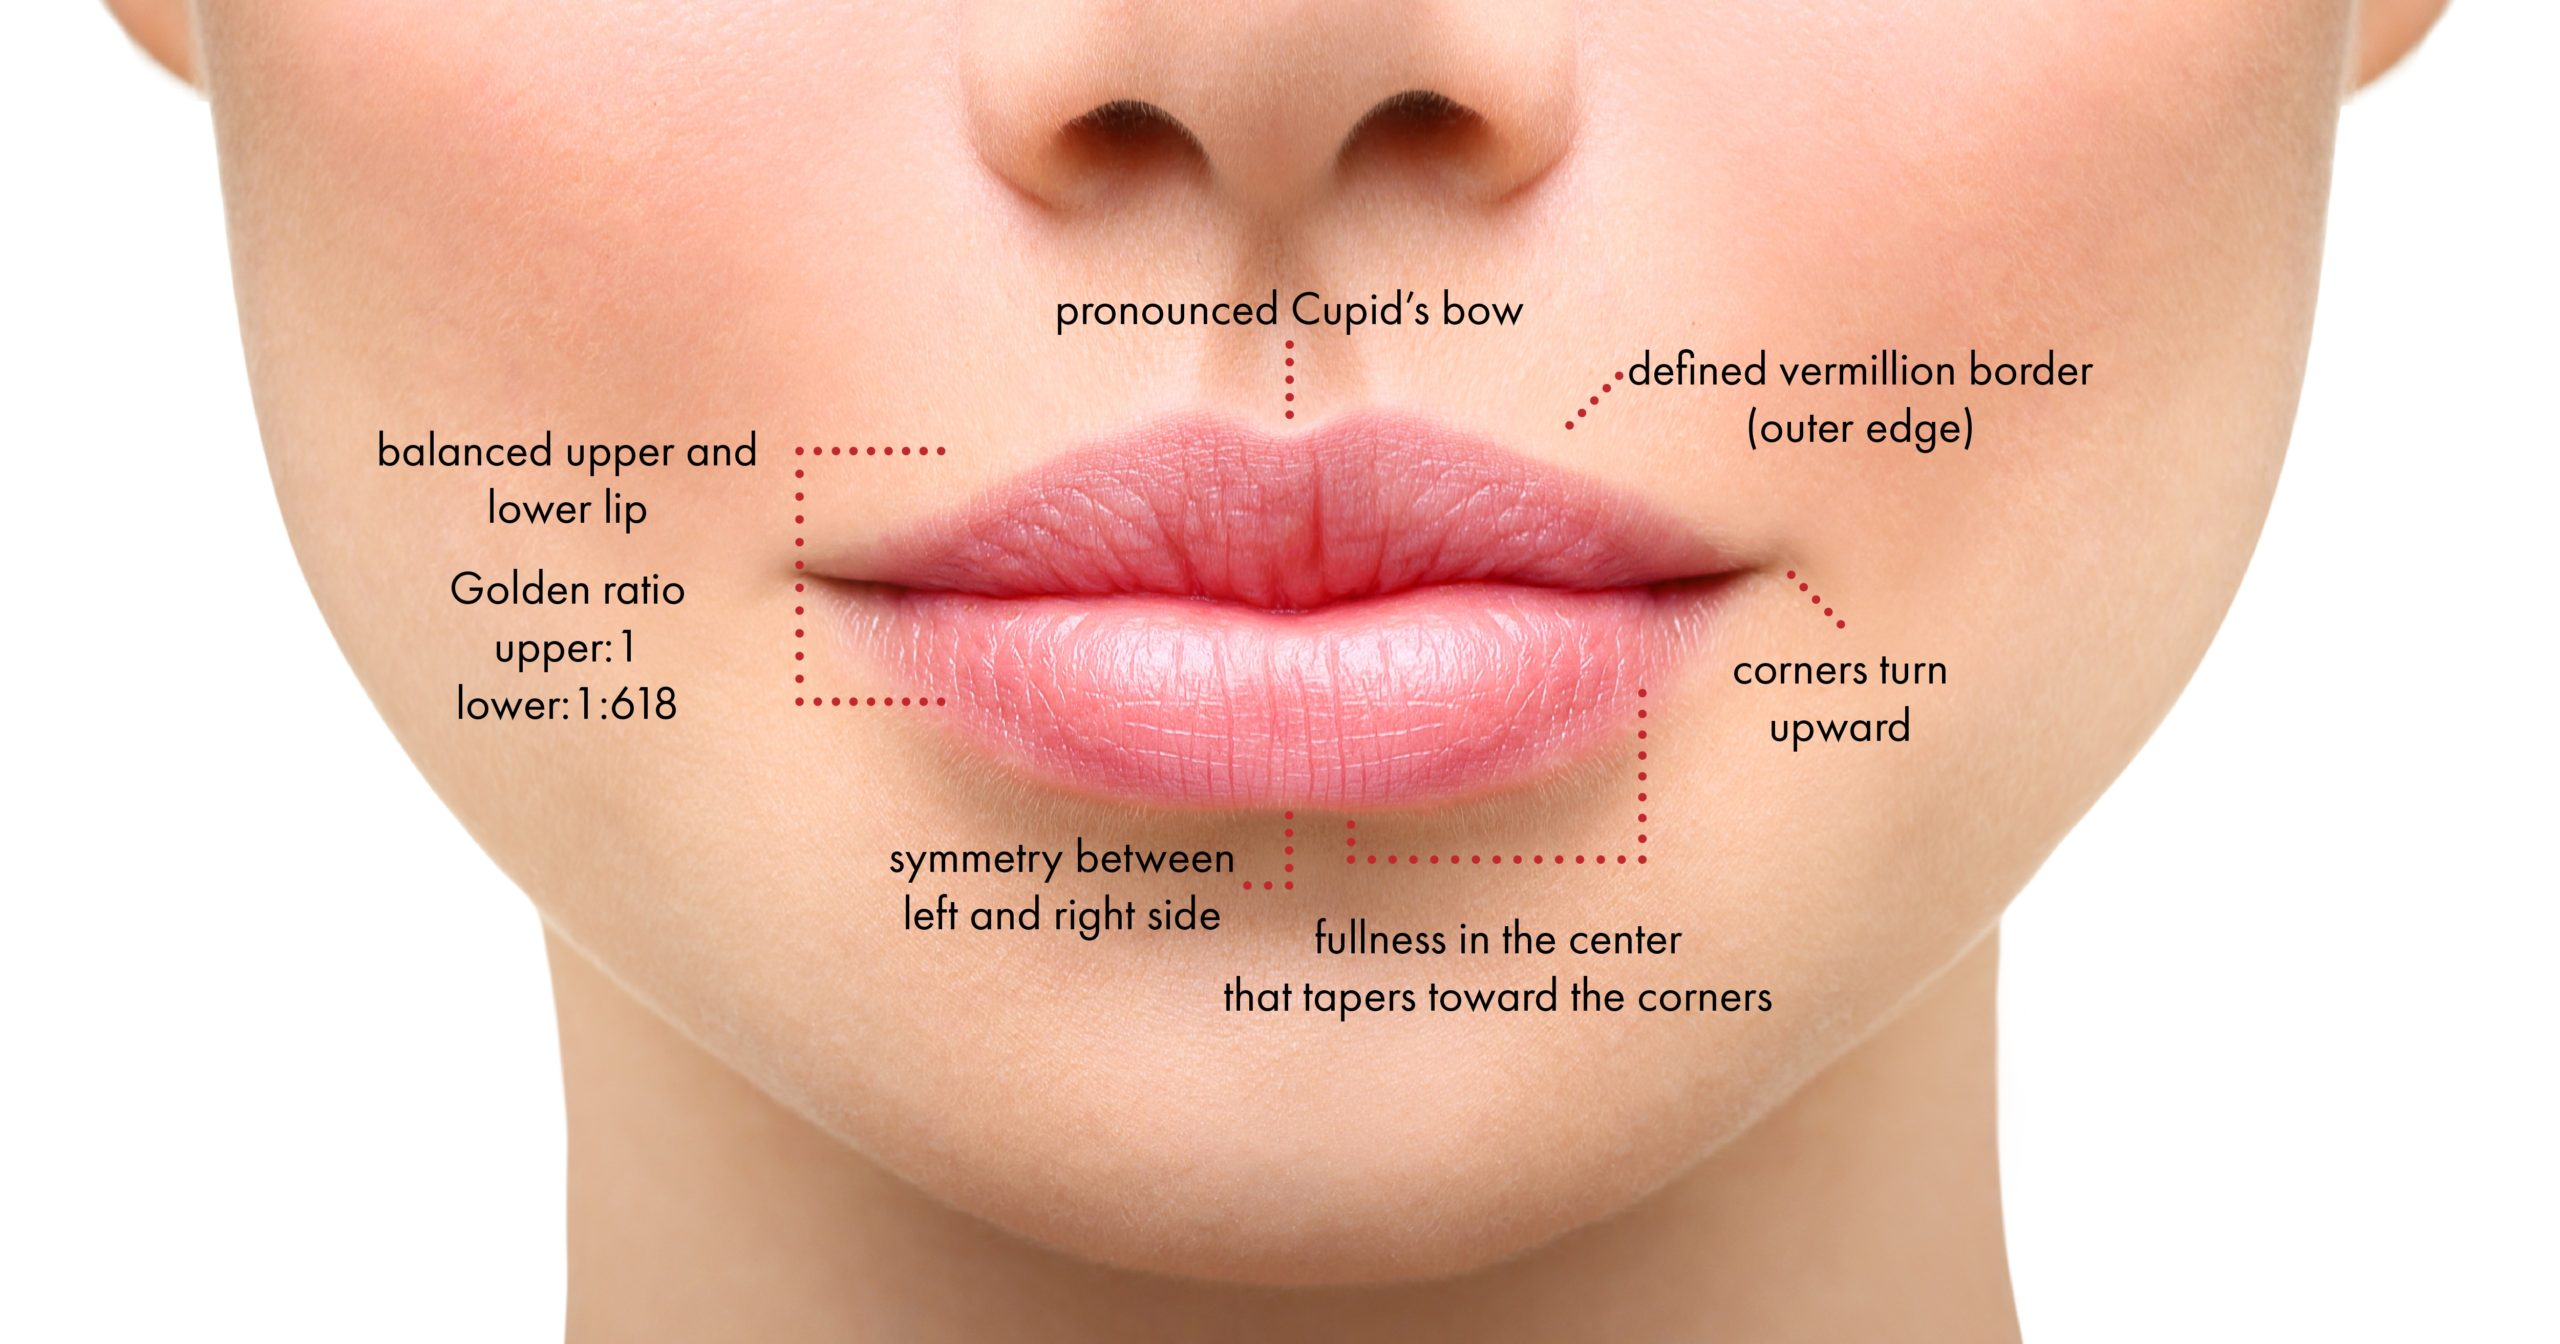 juvederm facial filler injectable diagram in new york